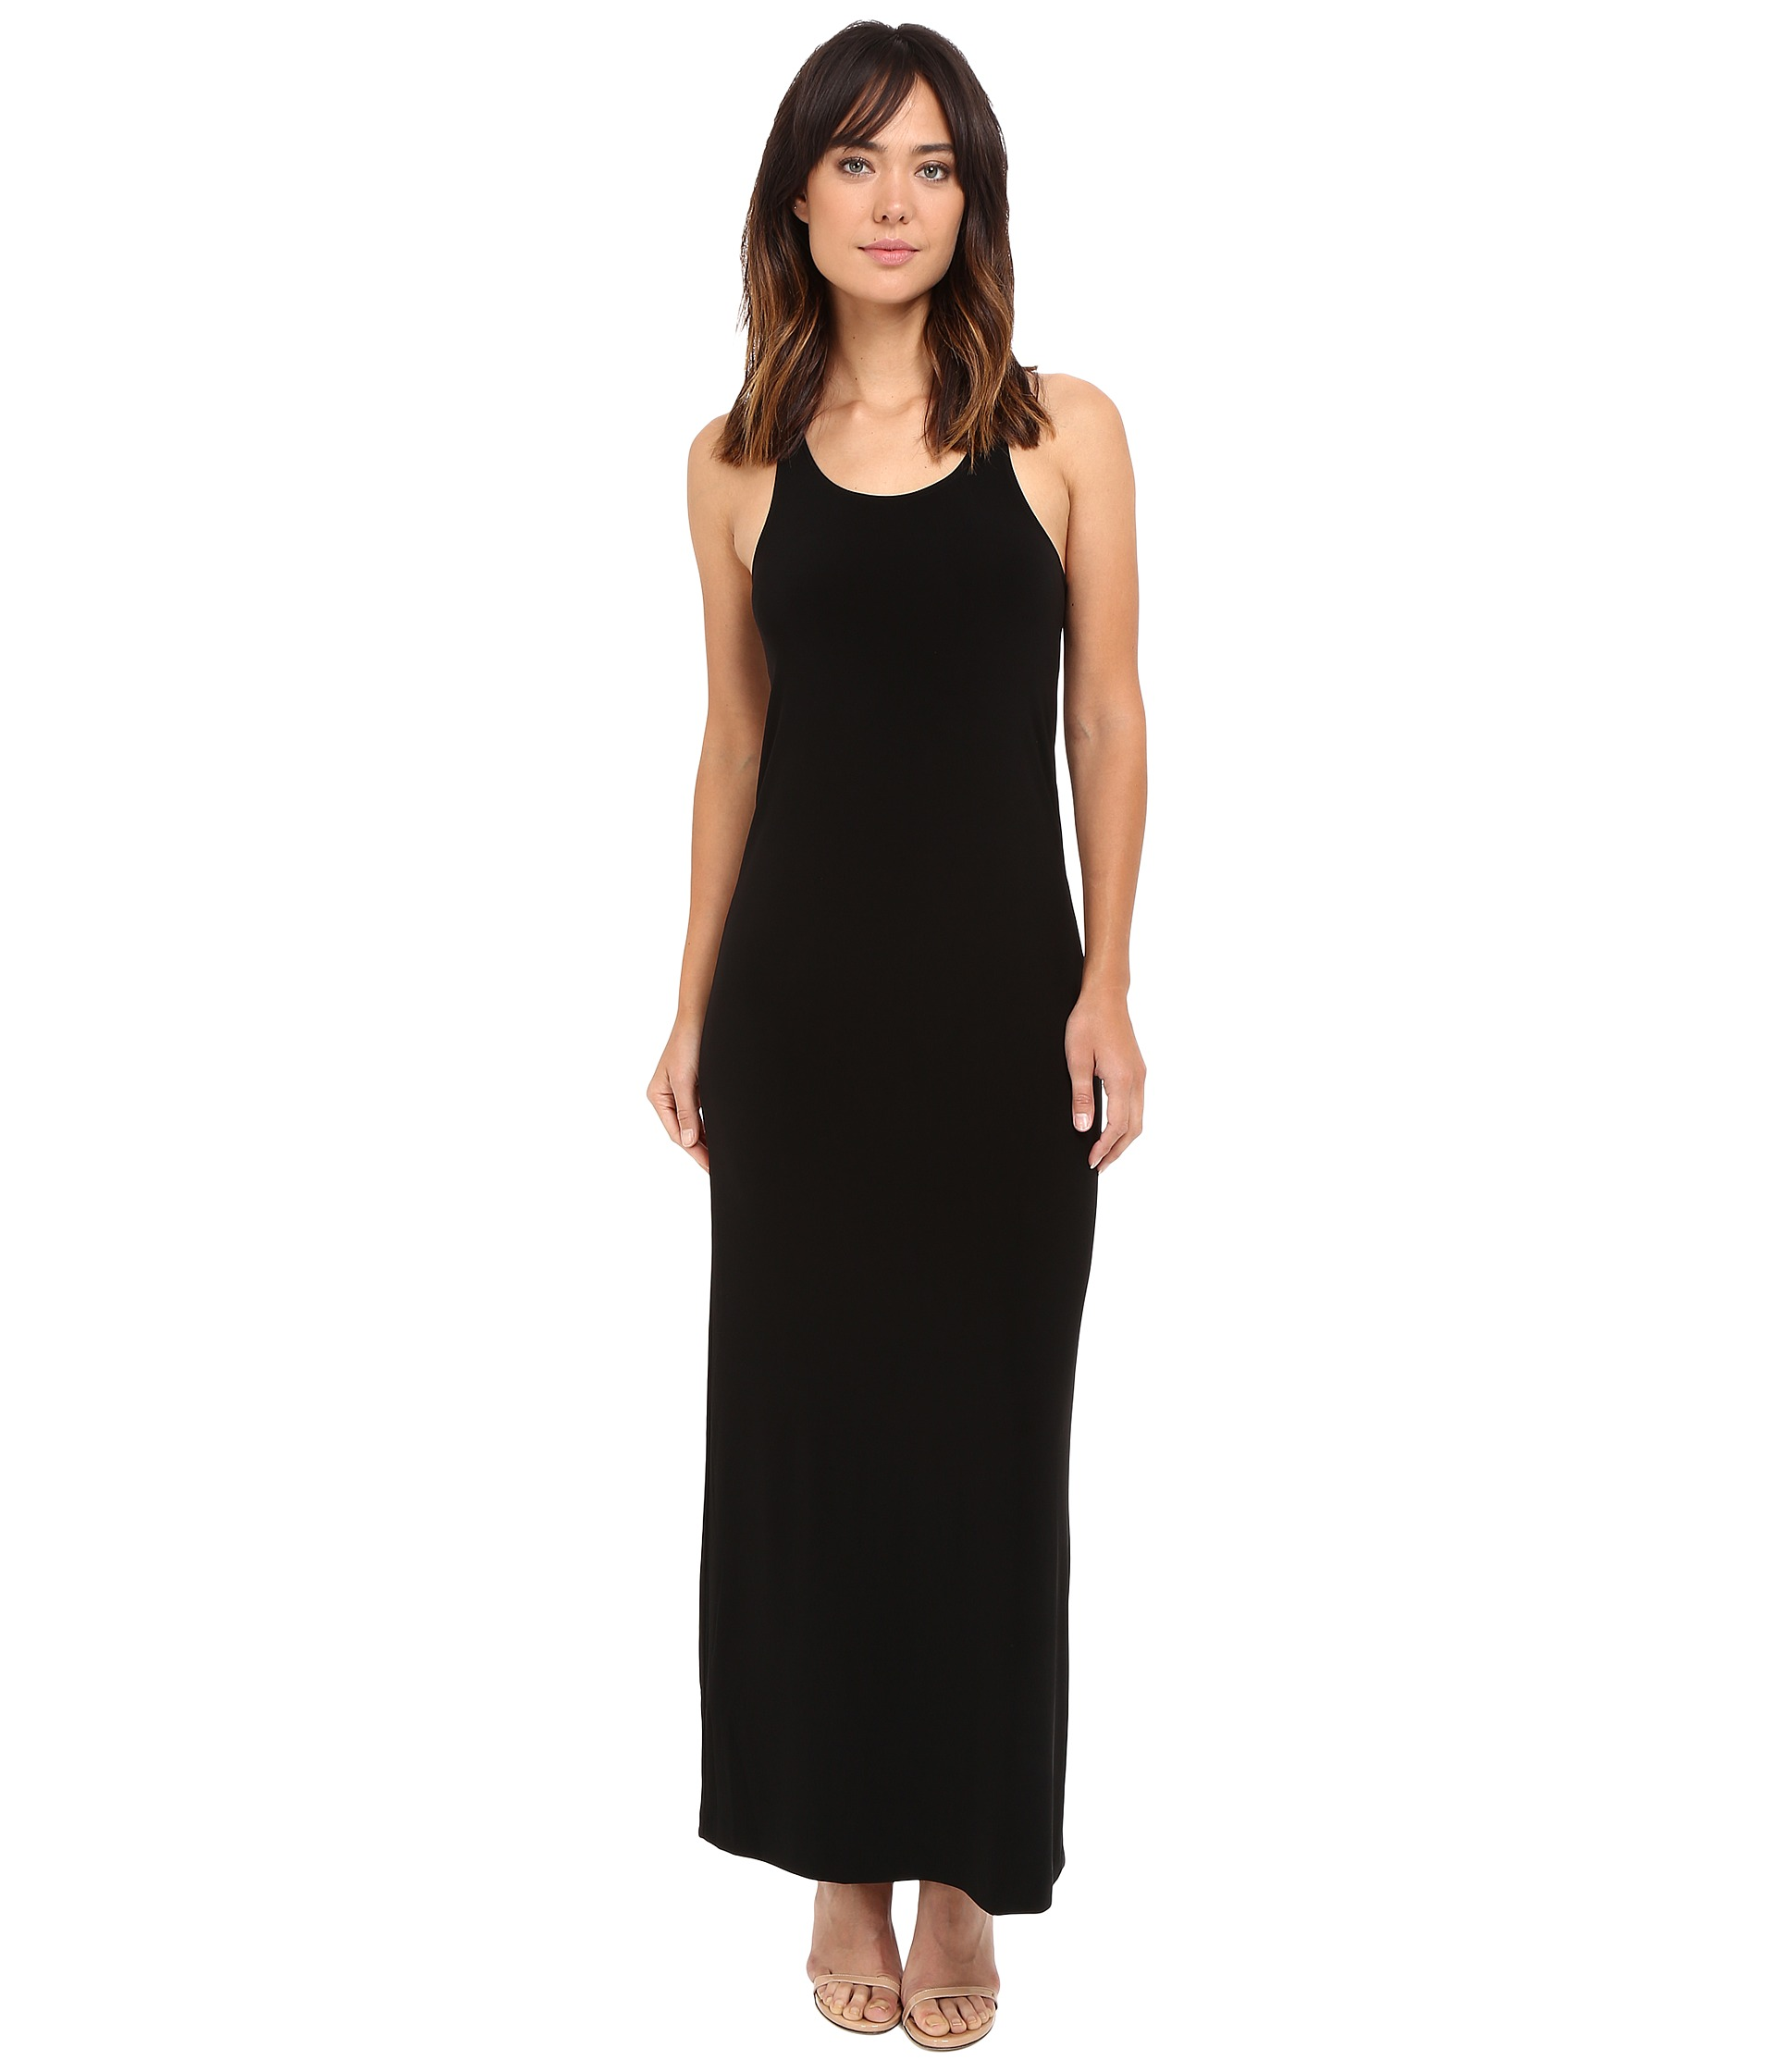 Black Dresses Mini Knee Length Midi Maxi Off the Shoulder Sumatra One Sleeve Maxi Dress $ $ $ Badgley Mischka Collection Velvet Ruffle Dress Long Dress with Tie Front $ $ $ Alice McCall Woman To Woman Dress.